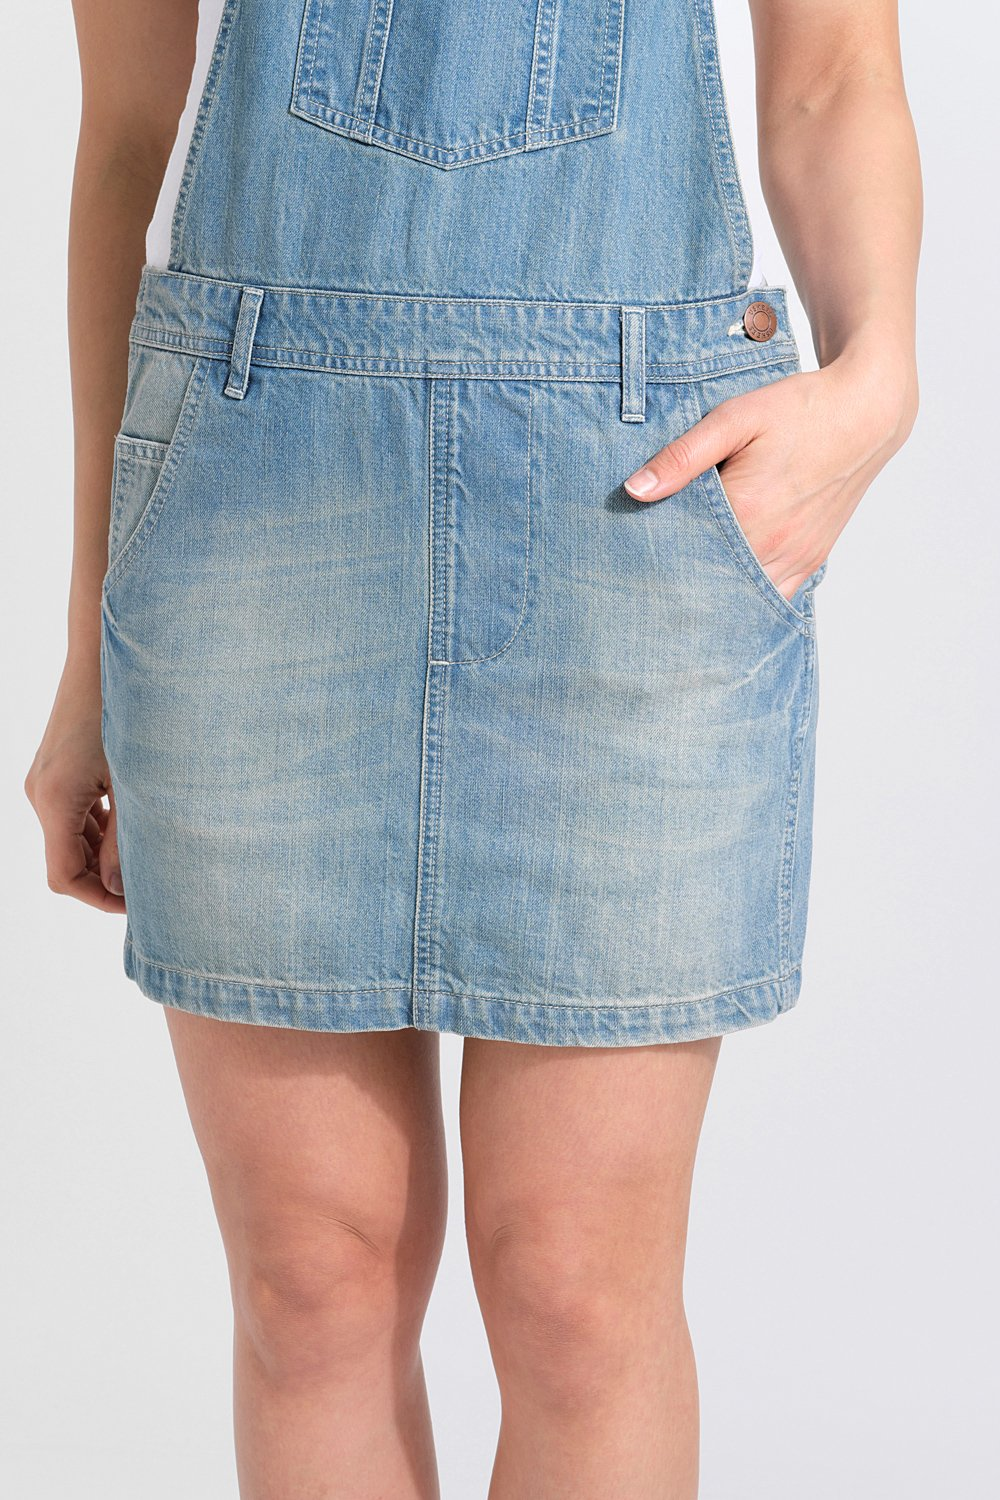 Close-up of short denim dungaree dress focussing on aged blue denim texture, belt loops and front pockets.